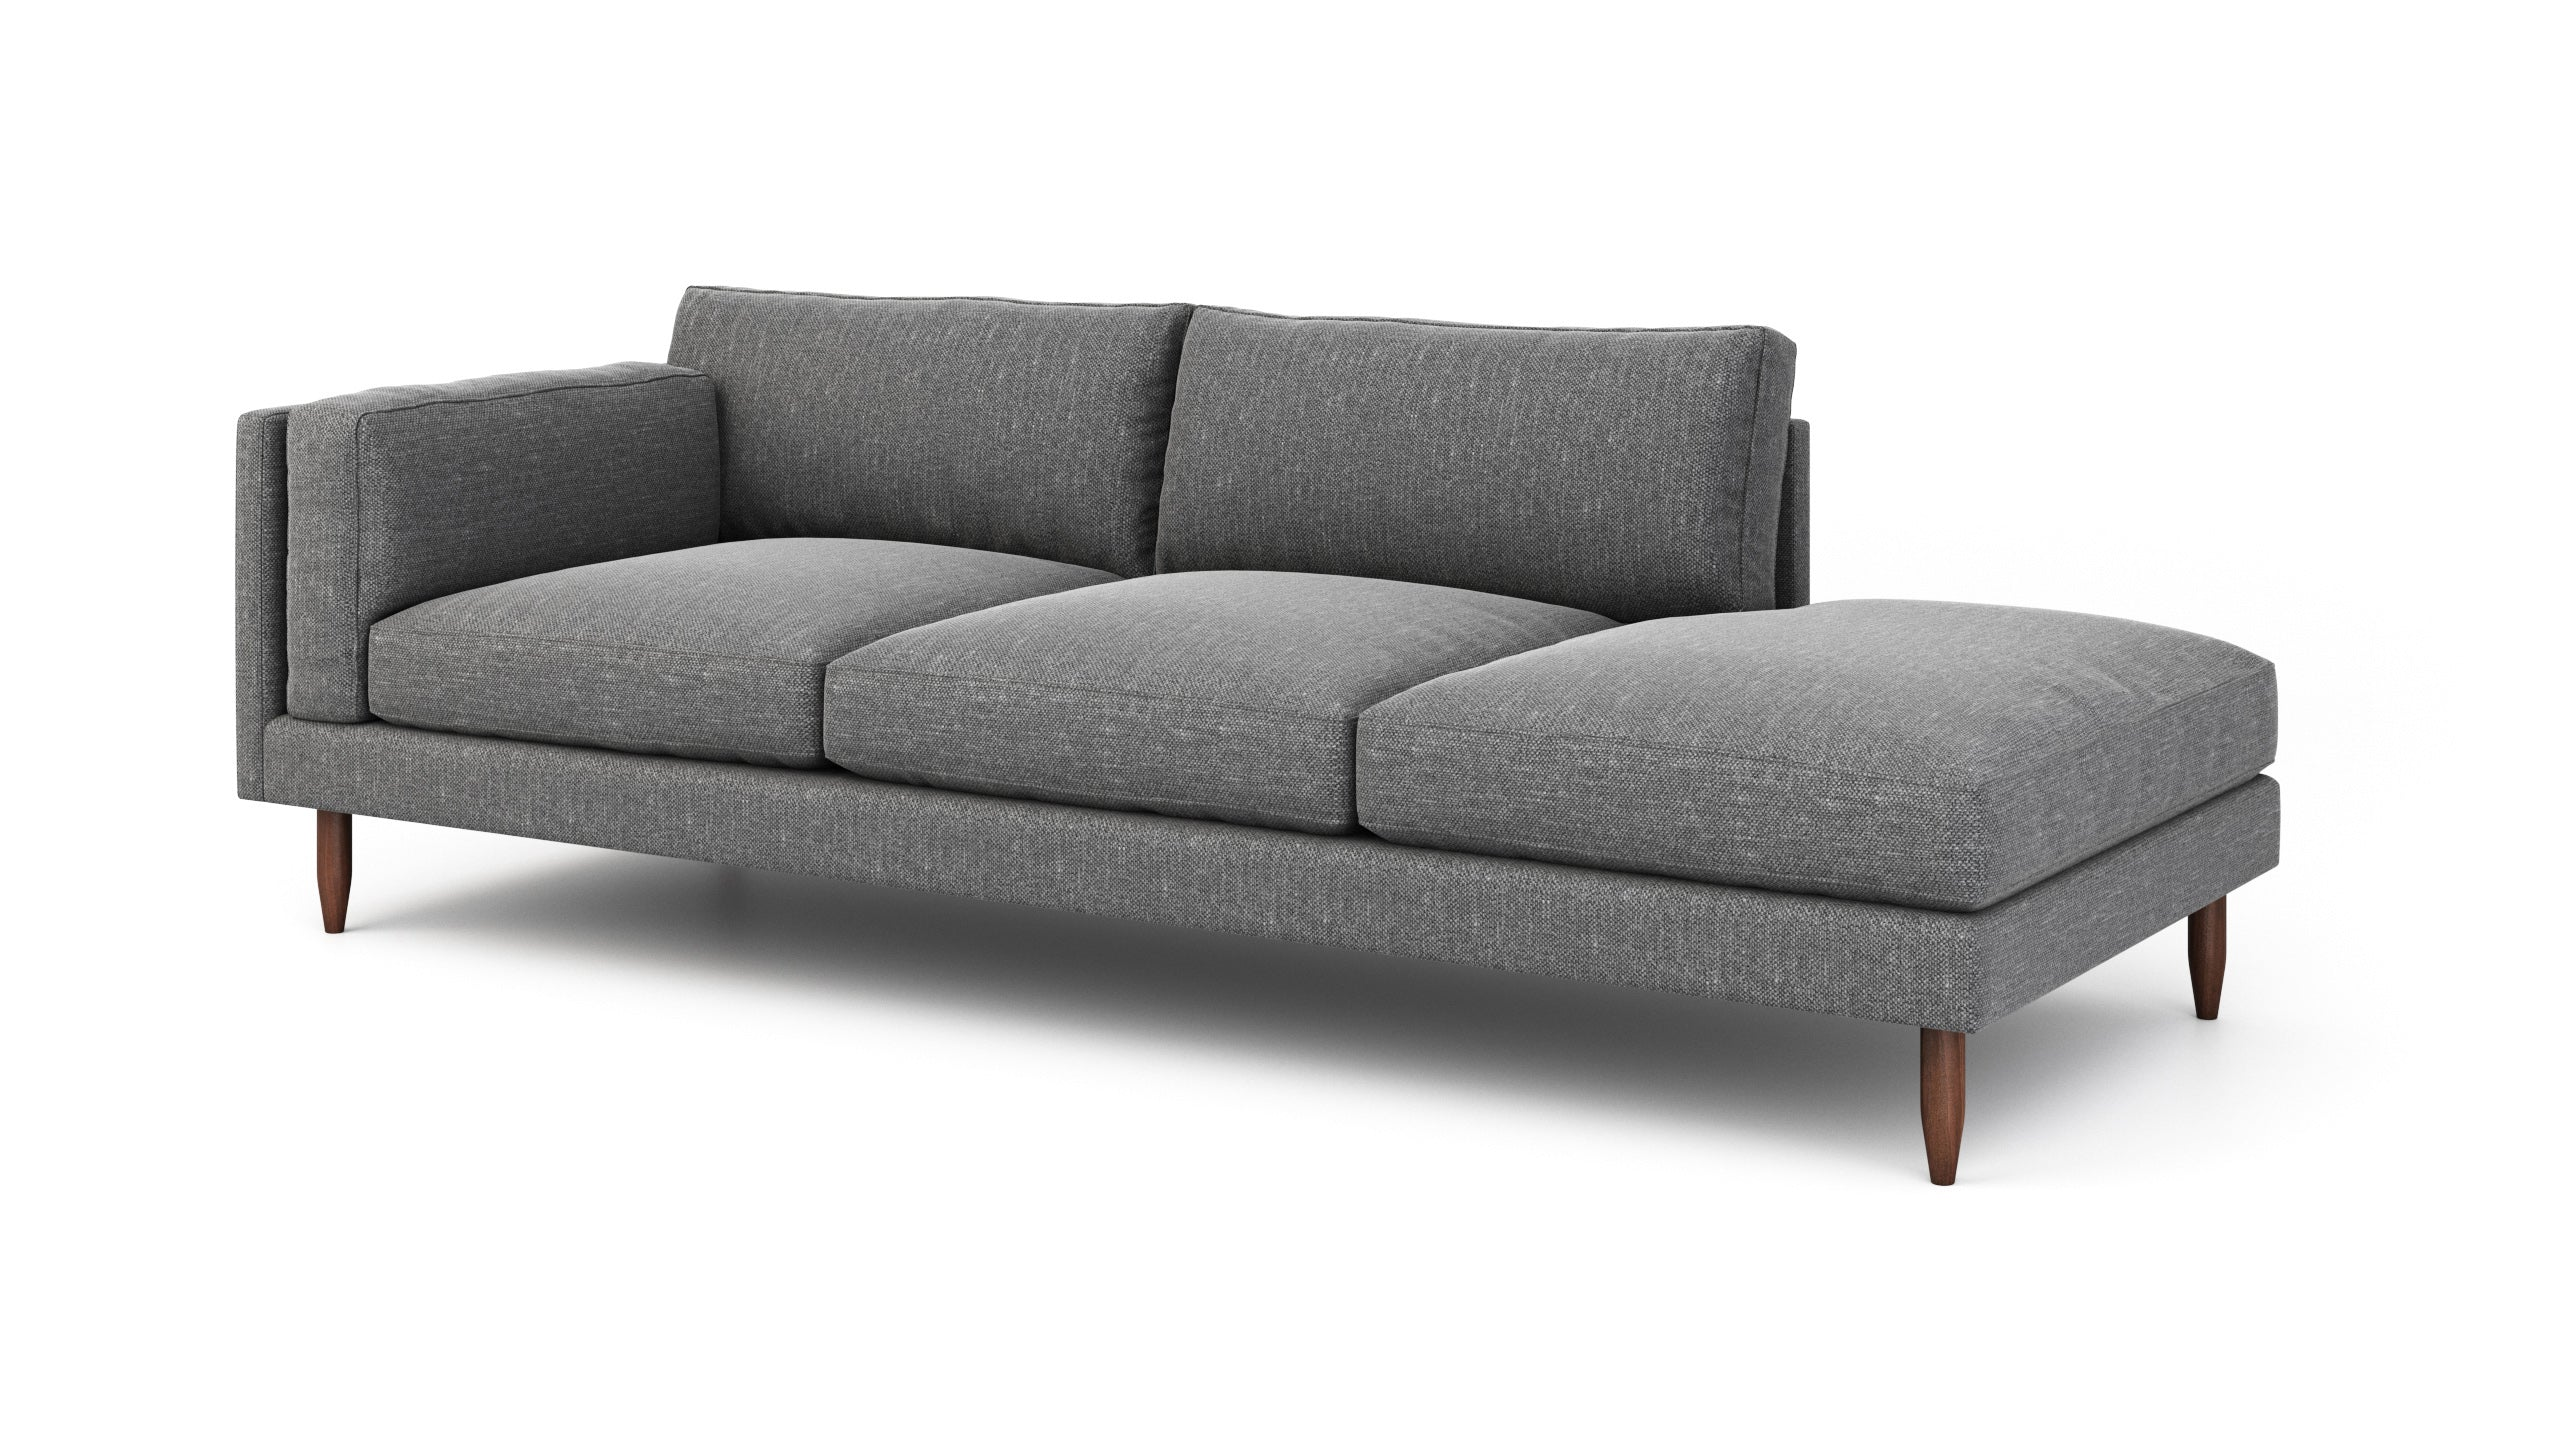 Skinny Fat Sofa With Bumper